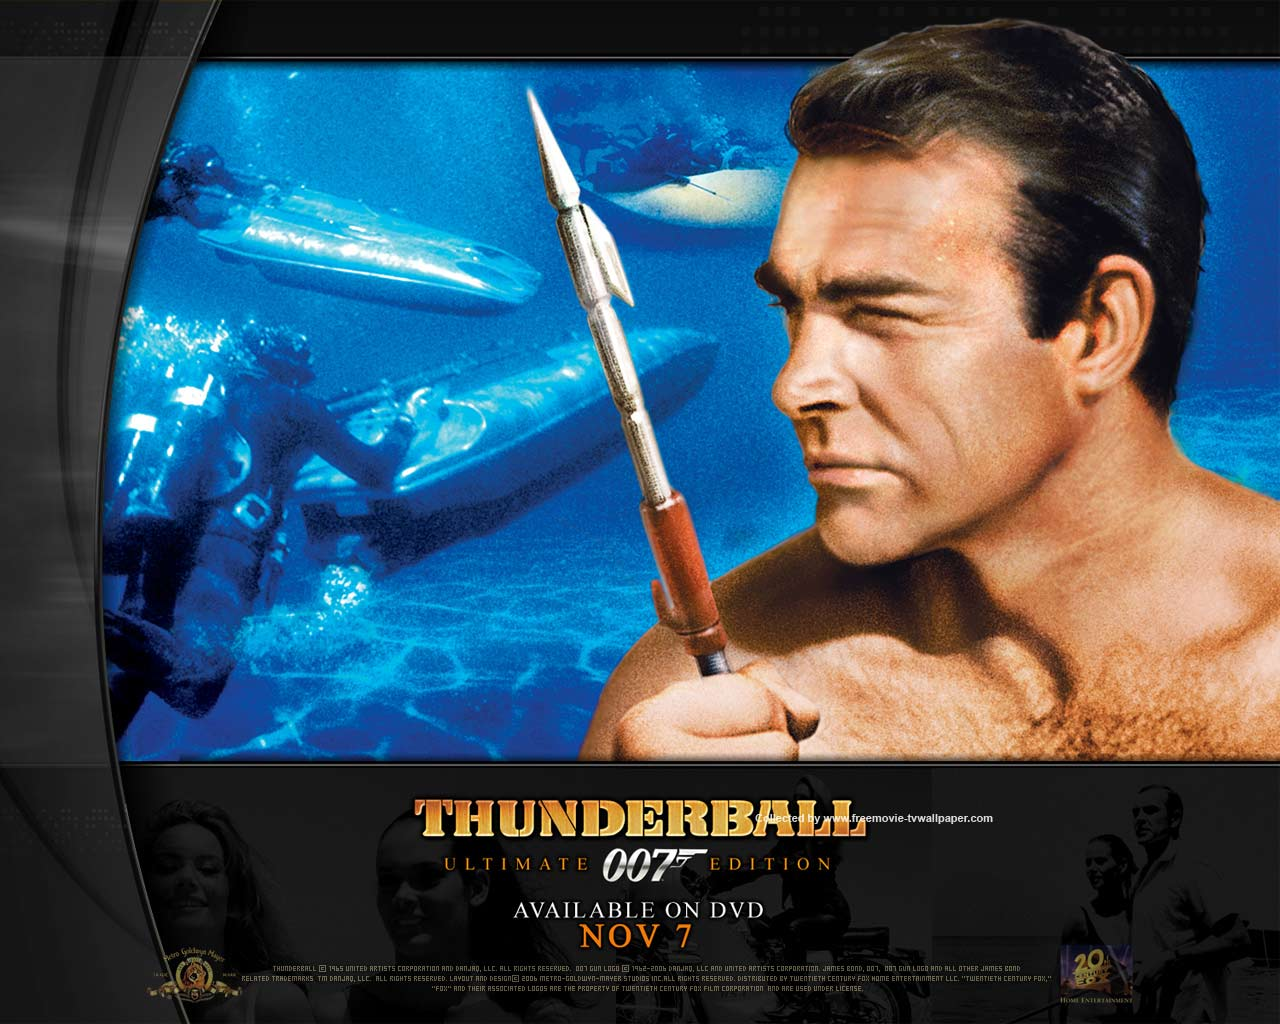 Movie Thunderball Movie Wallpaper Image Download 1280x1024